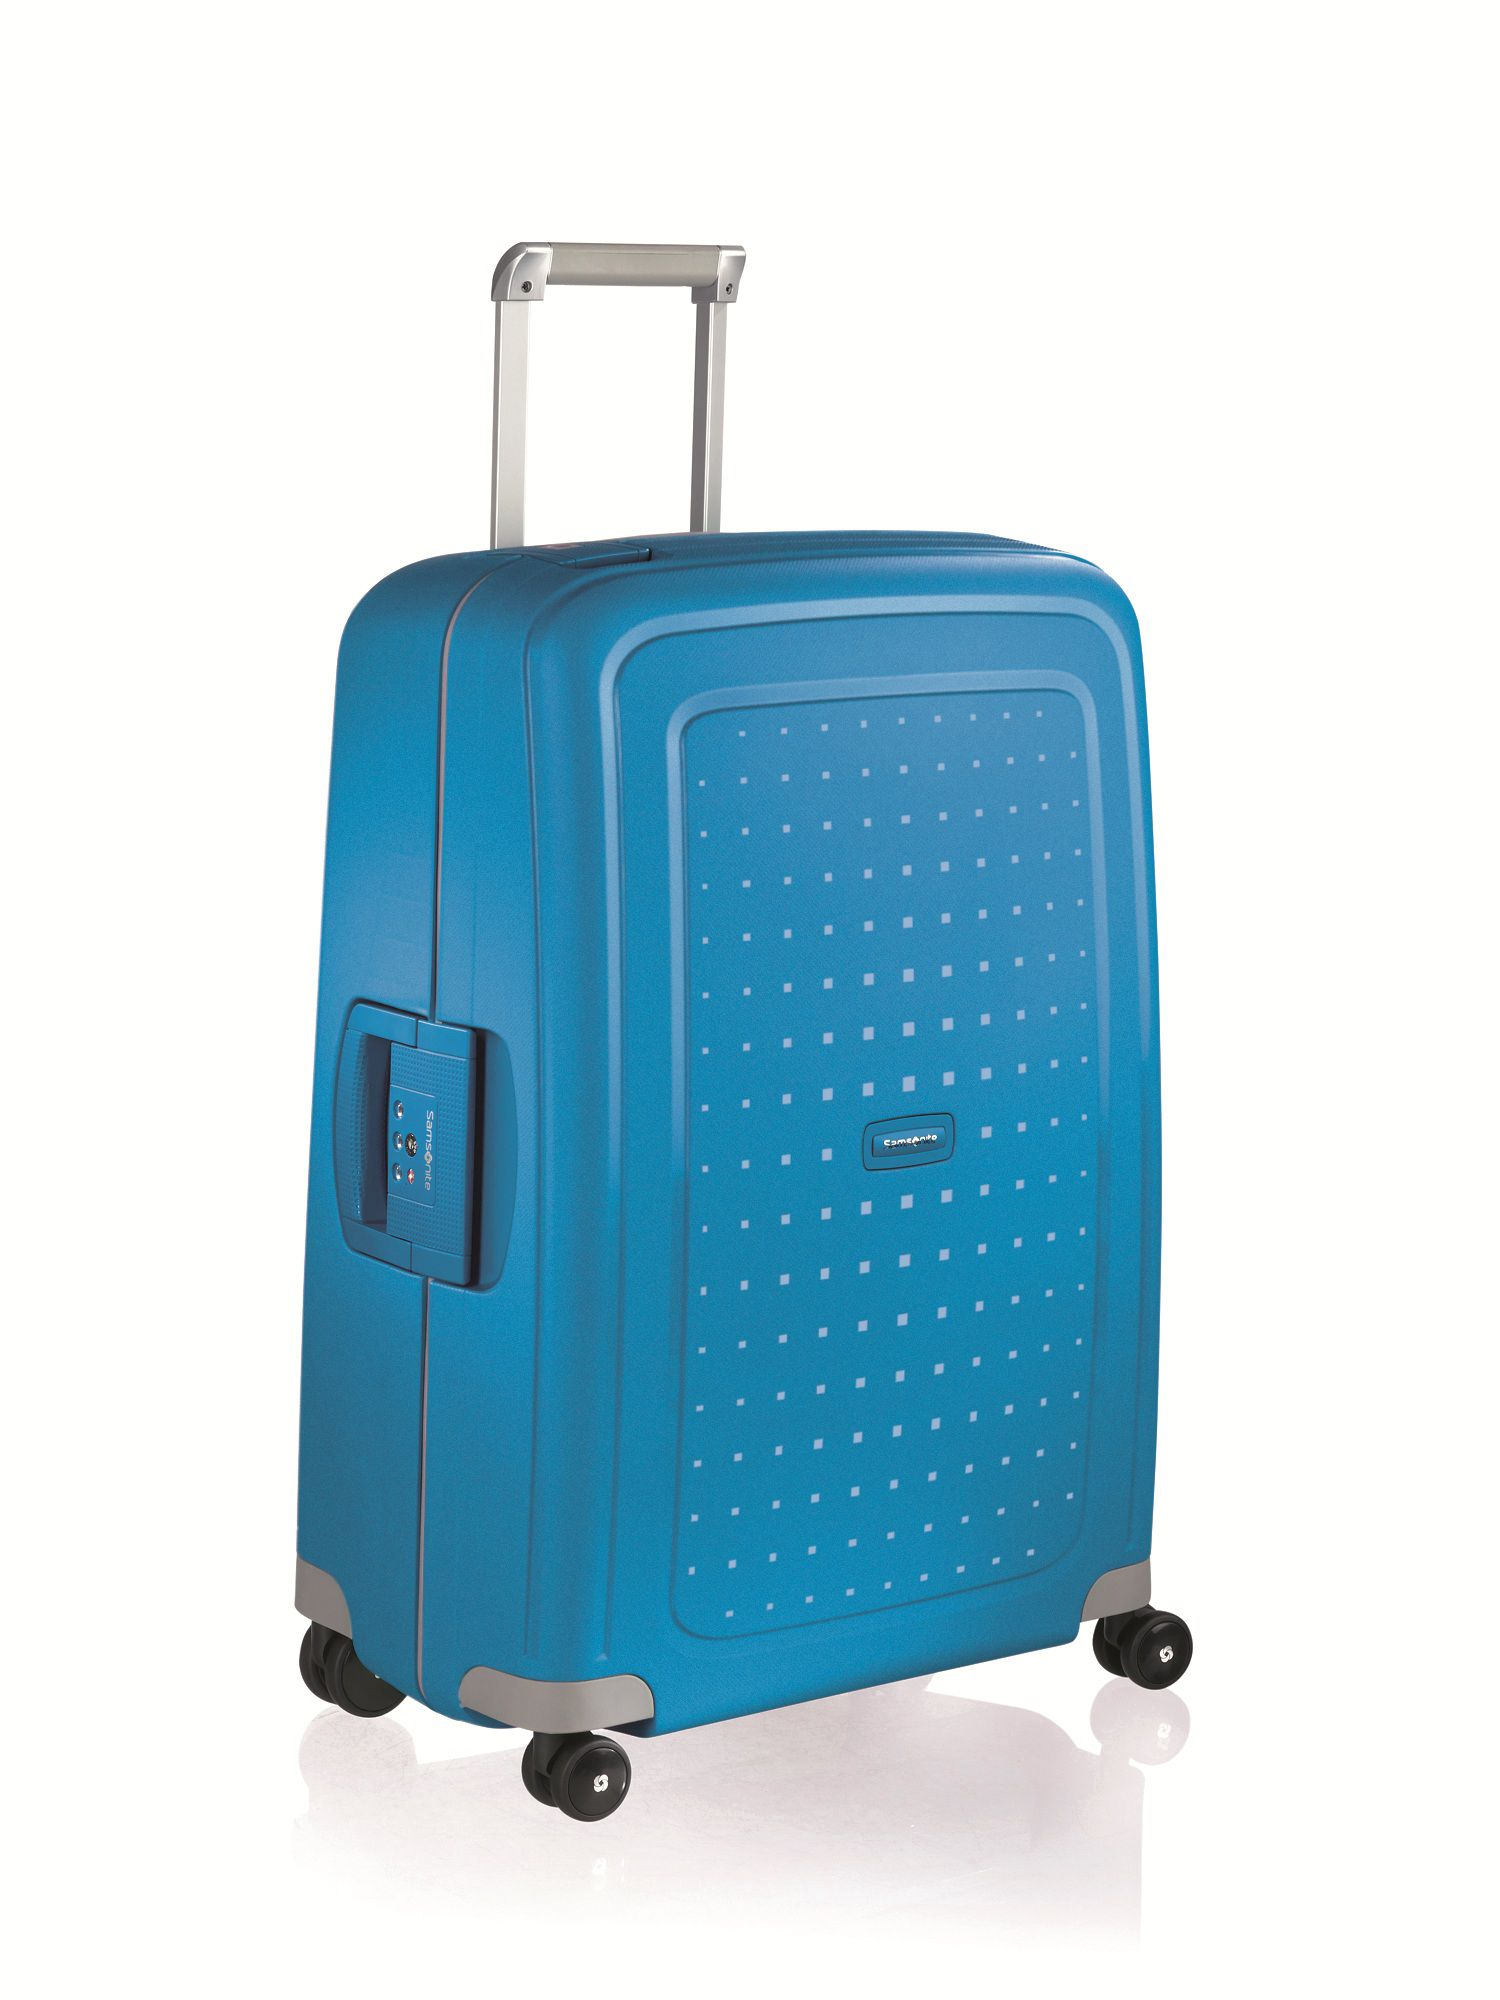 Samsonite S`Cure pacific blue 8 wheel 75cm large case Pacific